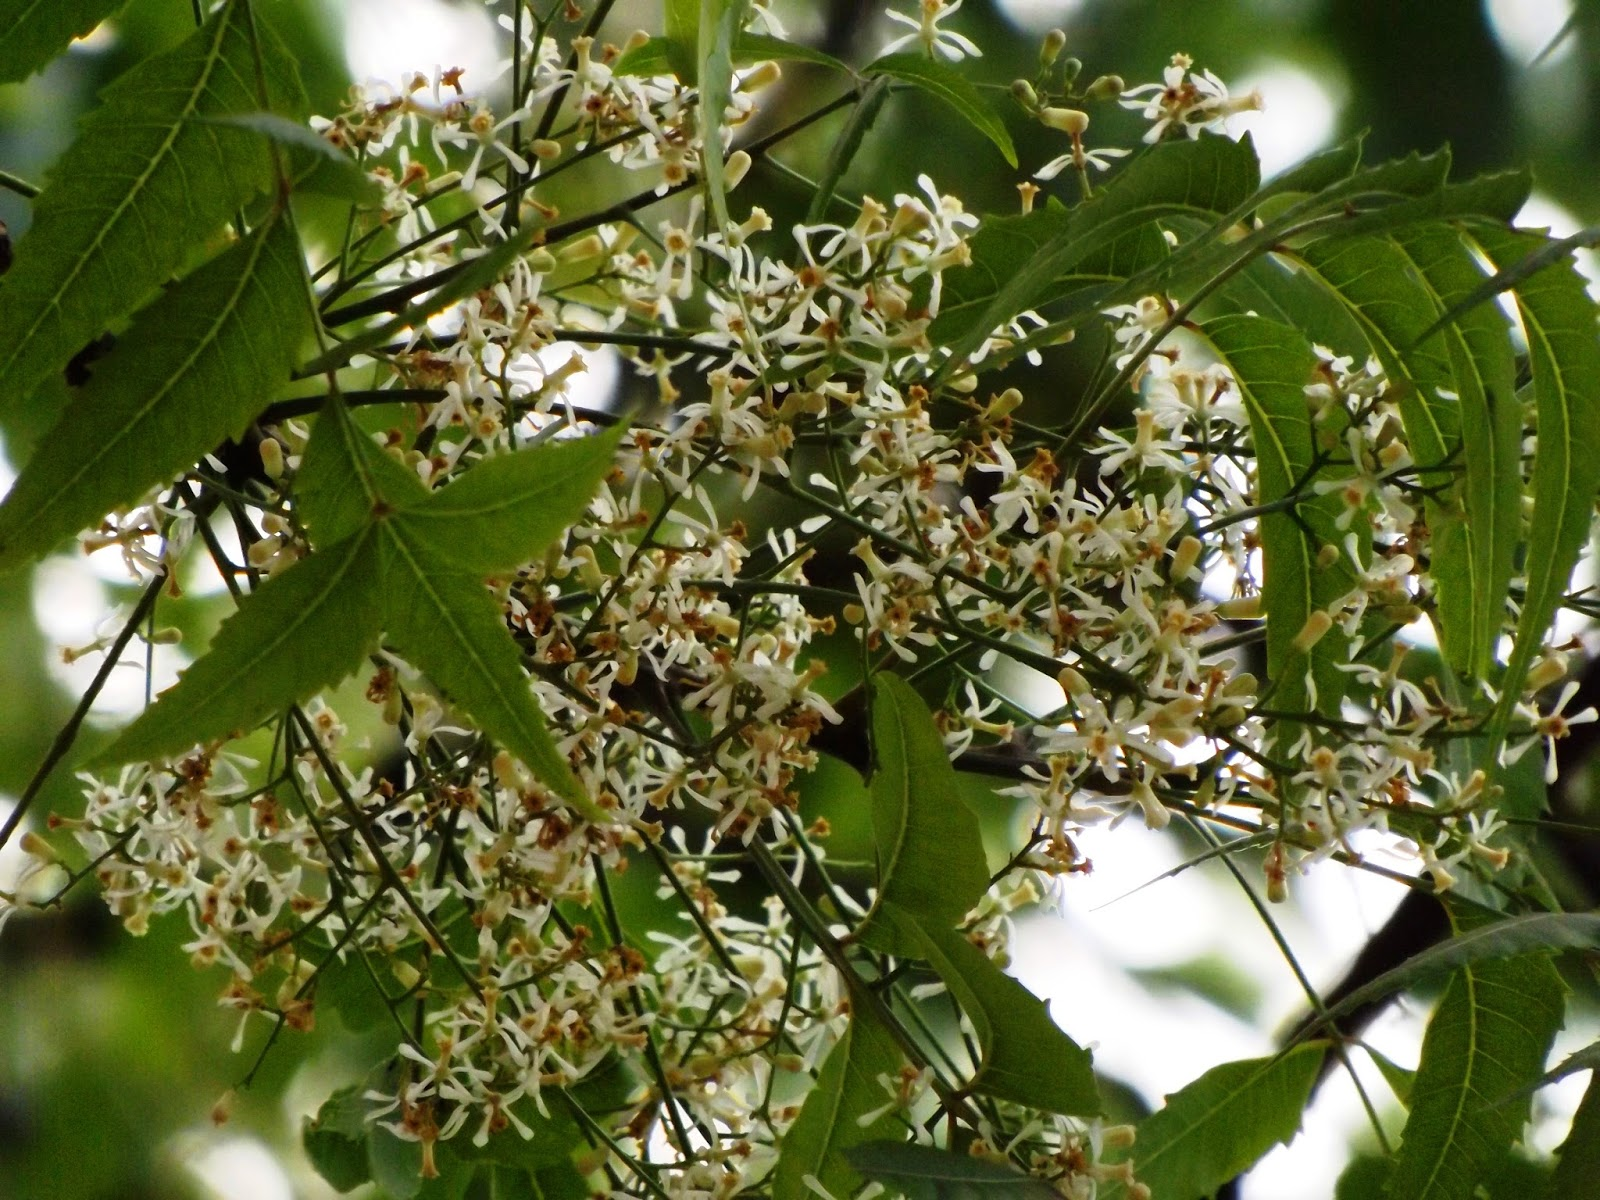 Neem azadirachta indica flowers are small white and sweet scented in axillary bunch of panicles flower blooms in march april neem tree is andromonoecious mightylinksfo